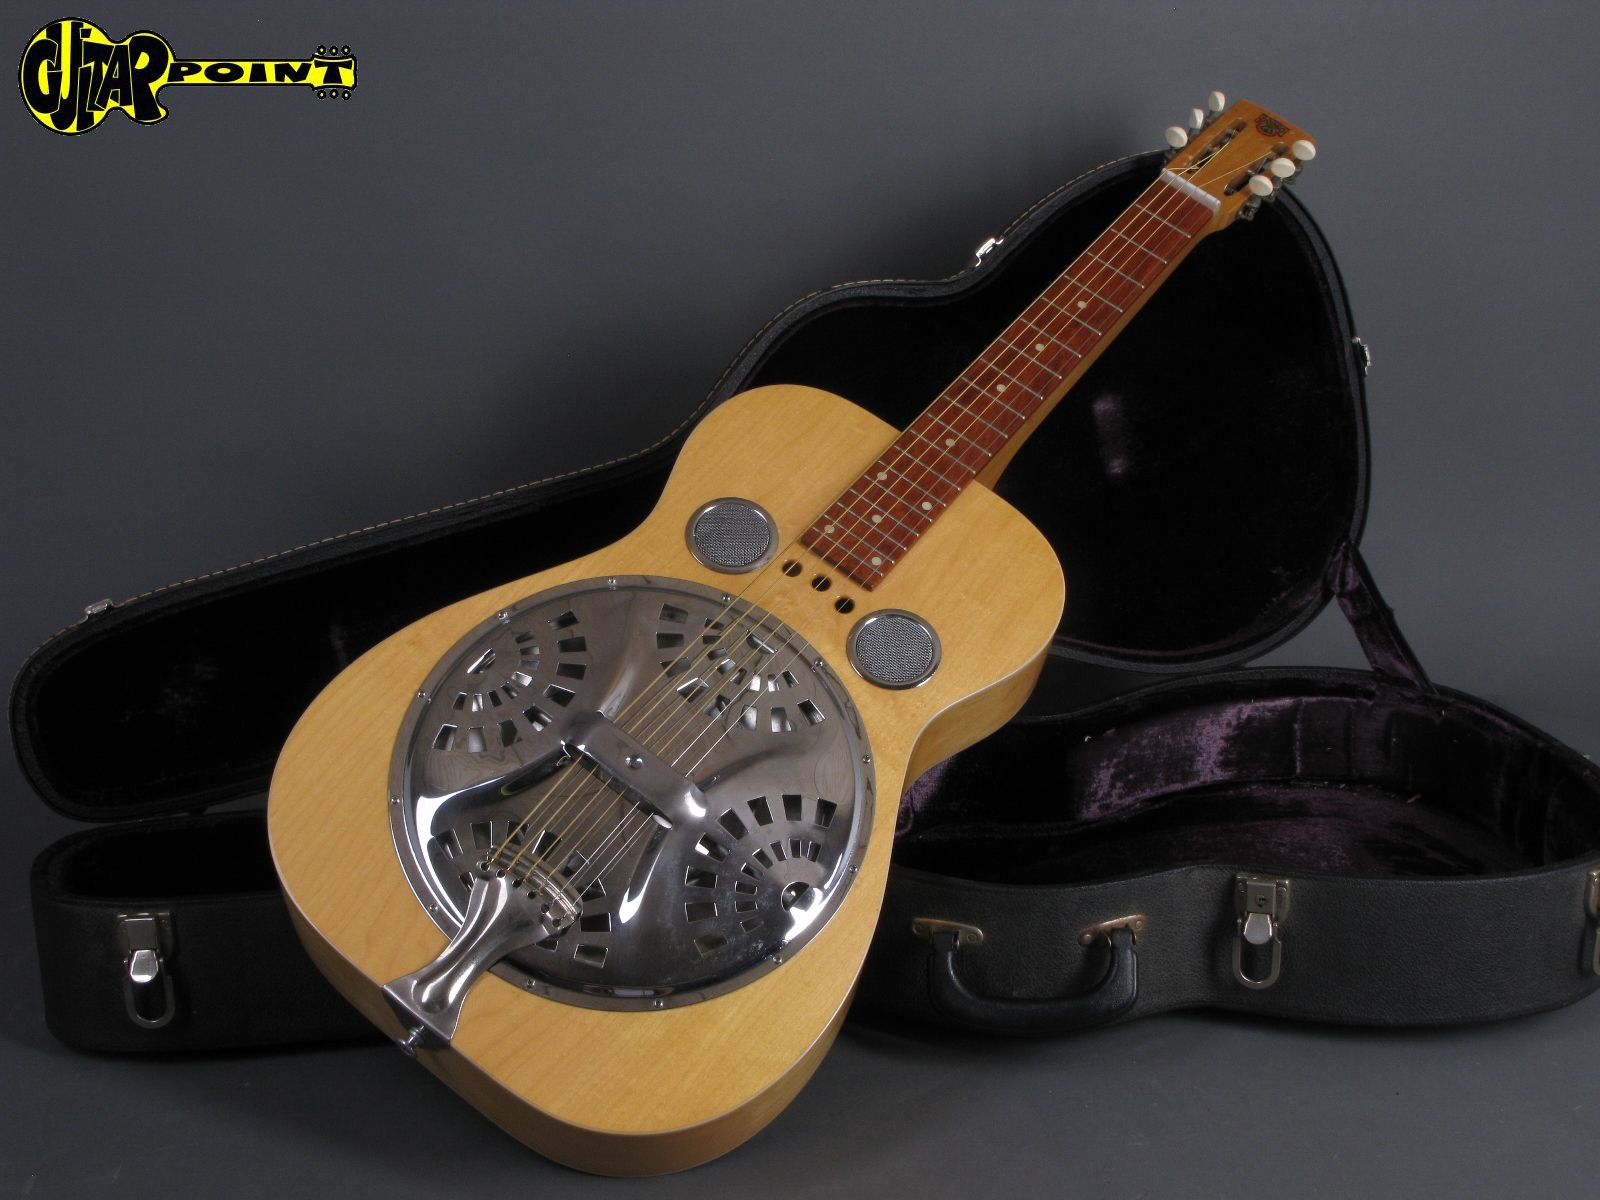 dobro model 60s 1975 natural guitar for sale guitarpoint. Black Bedroom Furniture Sets. Home Design Ideas